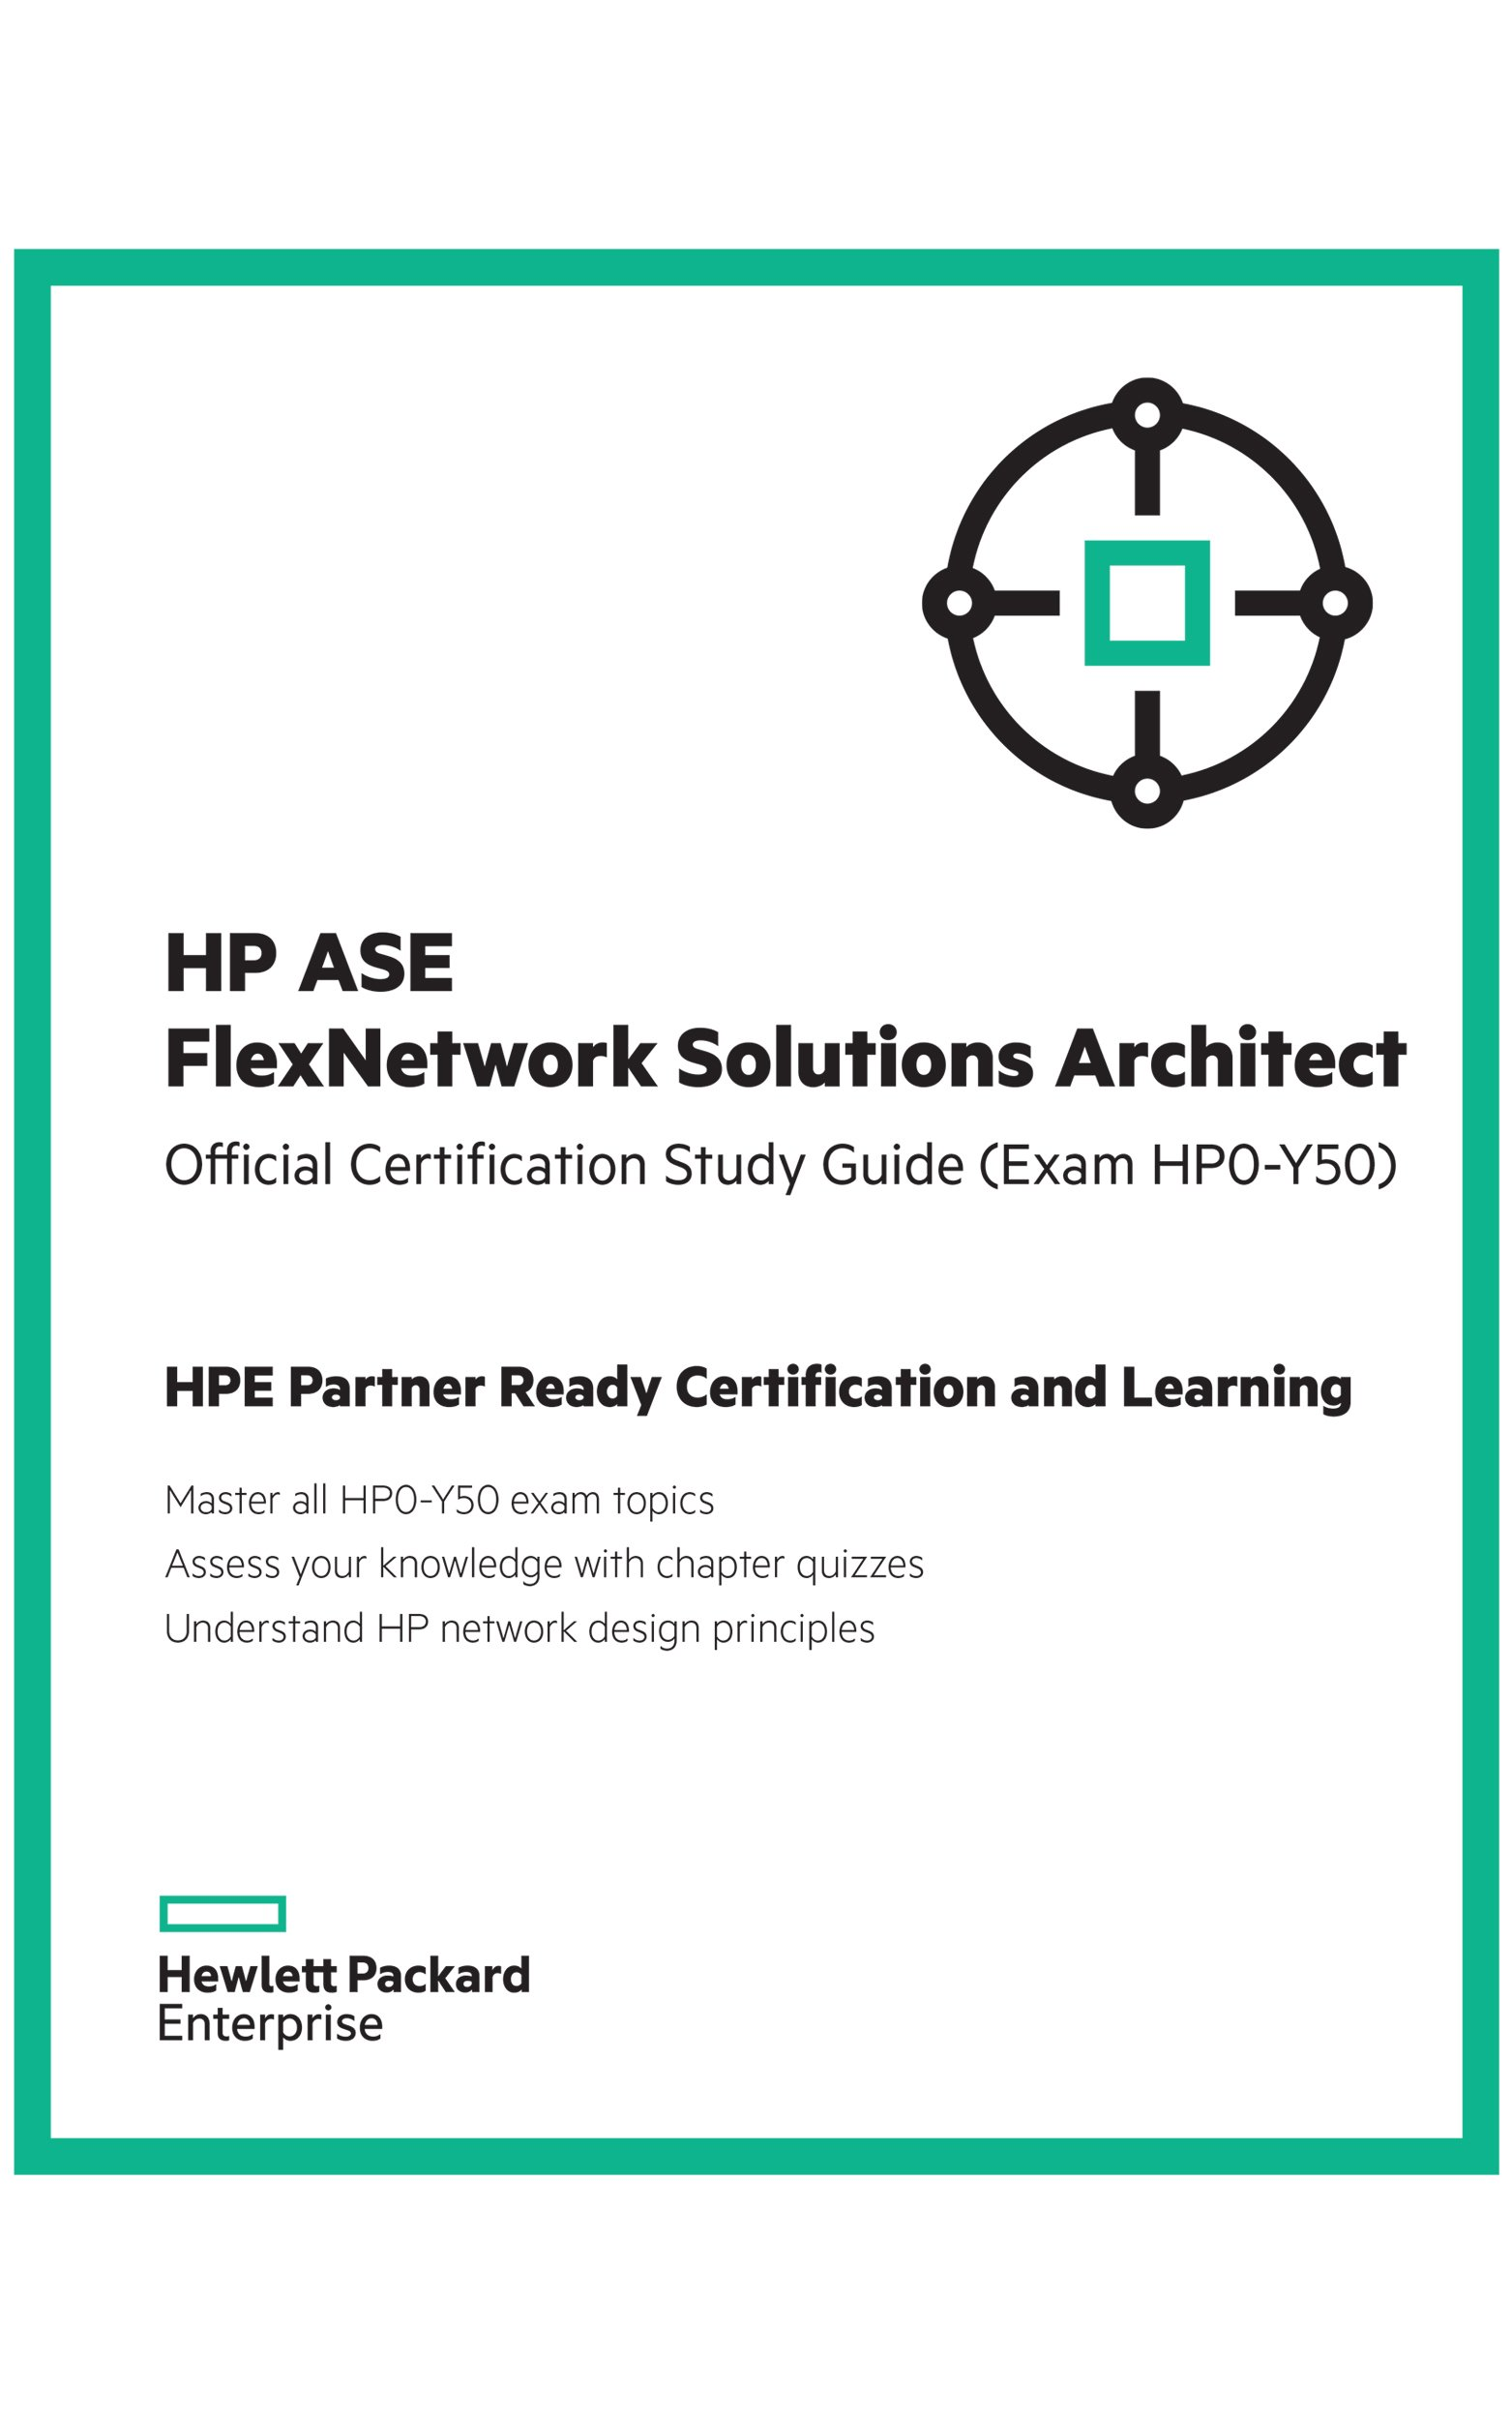 Hp ase flexnetwork solutions architect hp0 y50 miriam allred hp ase flexnetwork solutions architect hp0 y50 miriam allred 9781942741268 amazon books xflitez Images